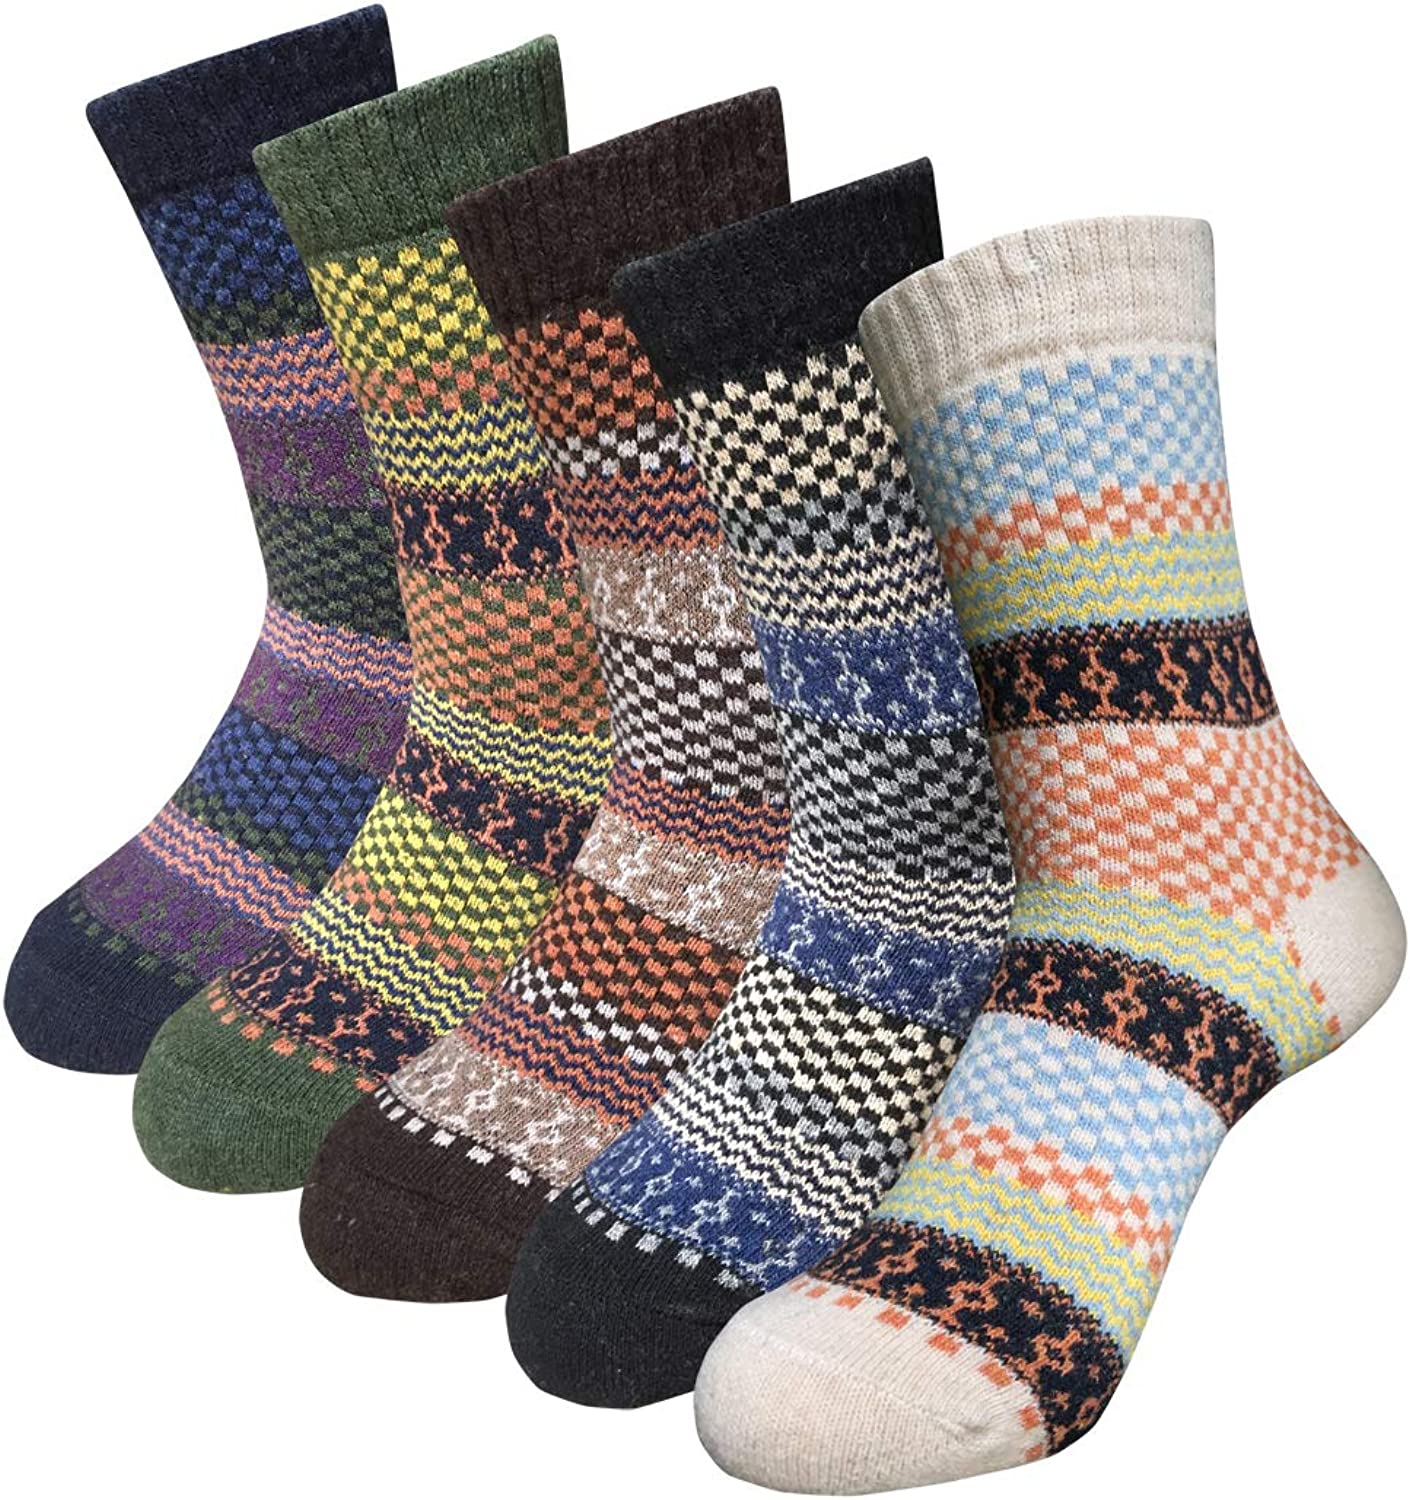 Women's Thick Soft Warm Wool Crew Socks Vintage Winter Casual Ankle Boots Socks for Girl Pack of 5 Size 612